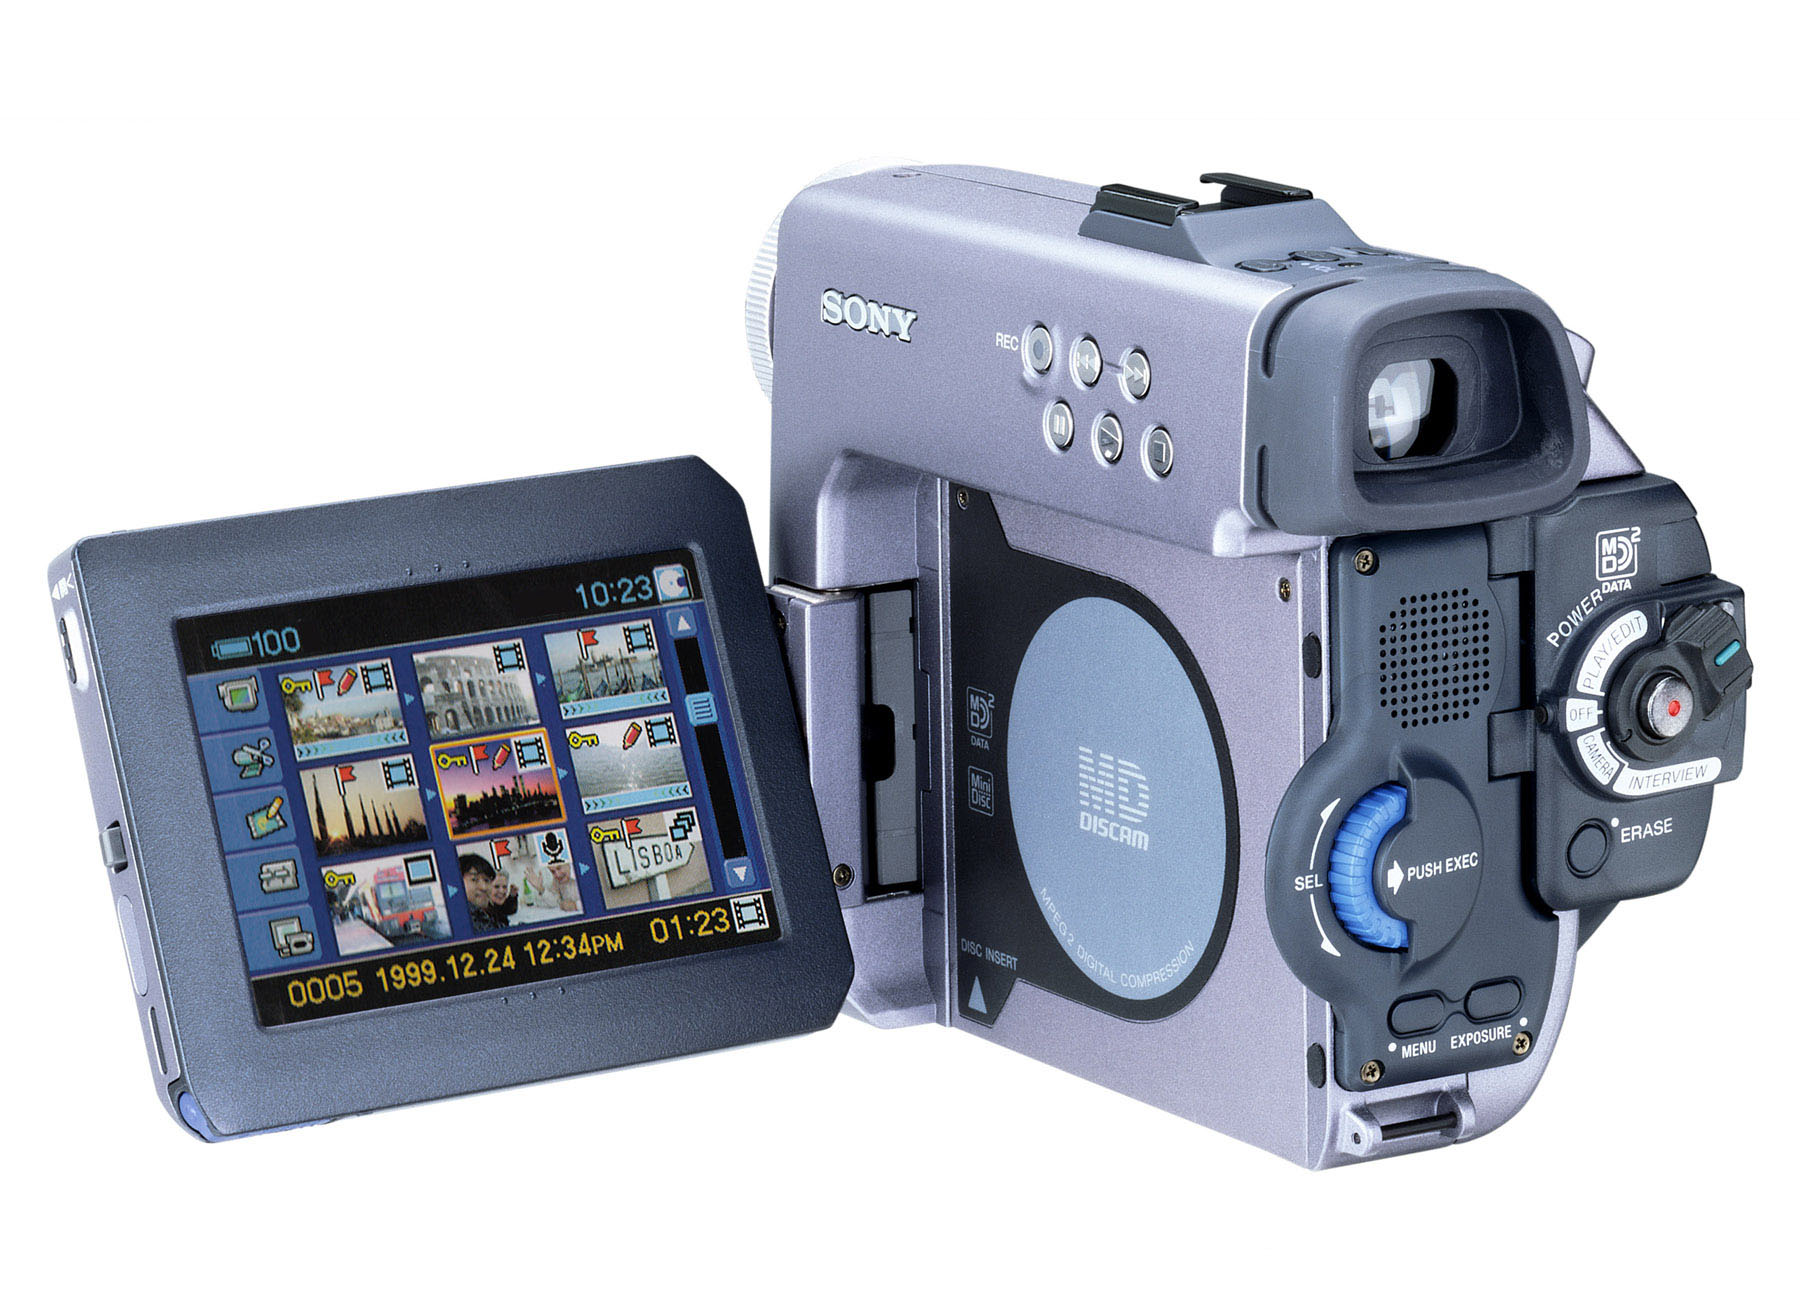 Sony Dcm M1 Battery And Charger Dcmm1 Camcorder And Chargers